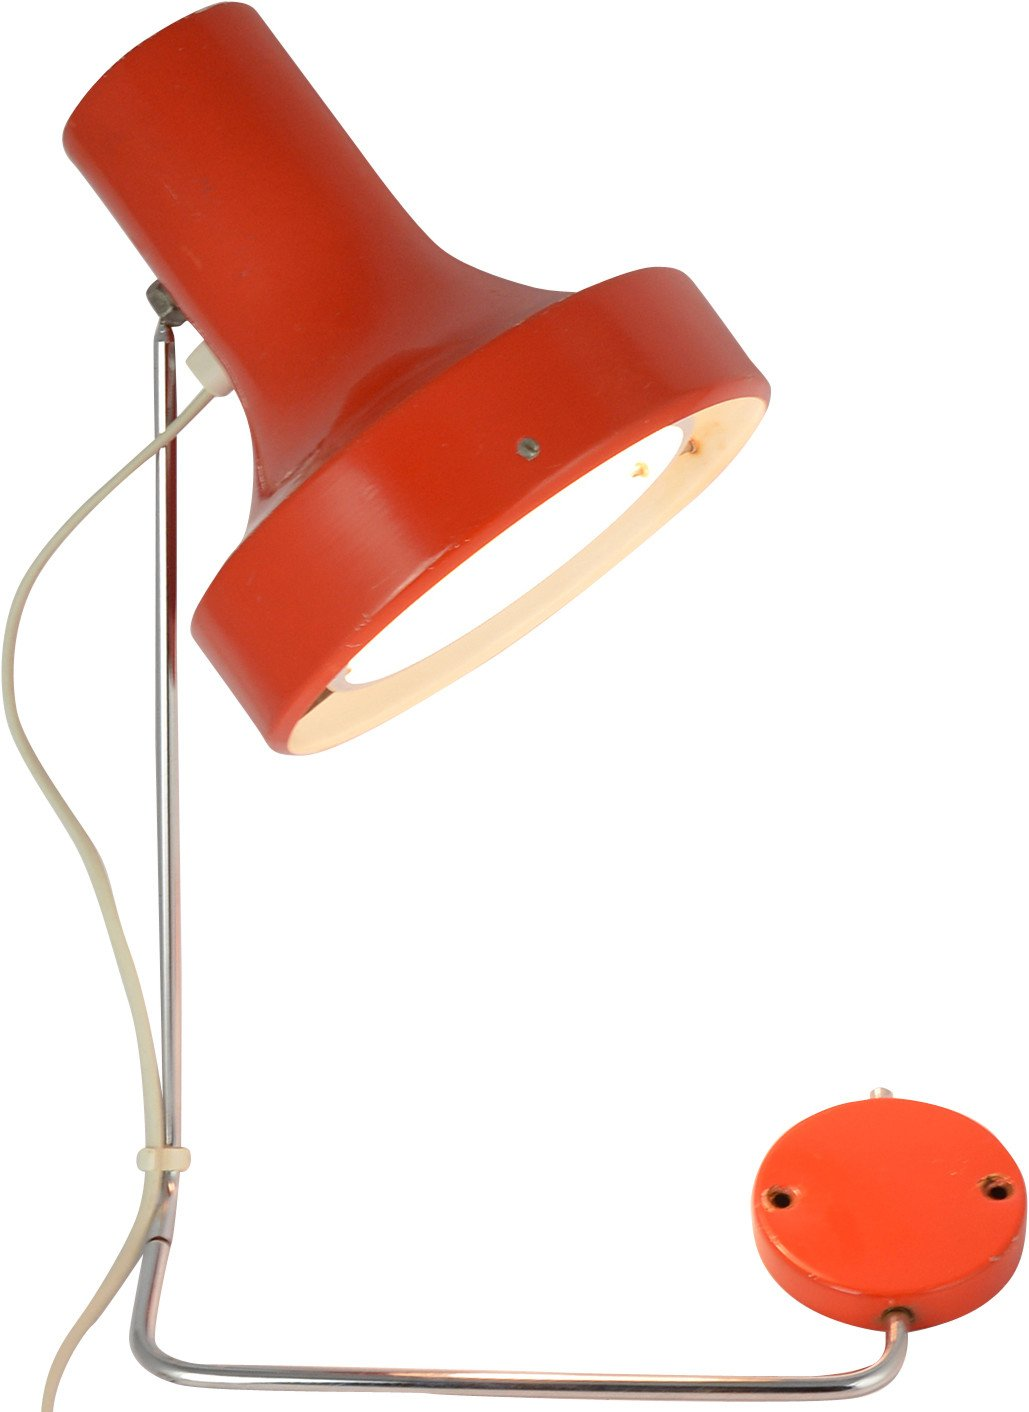 Wall Lamp by J. Hurka for Napako, Czechoslovakia, 1960s